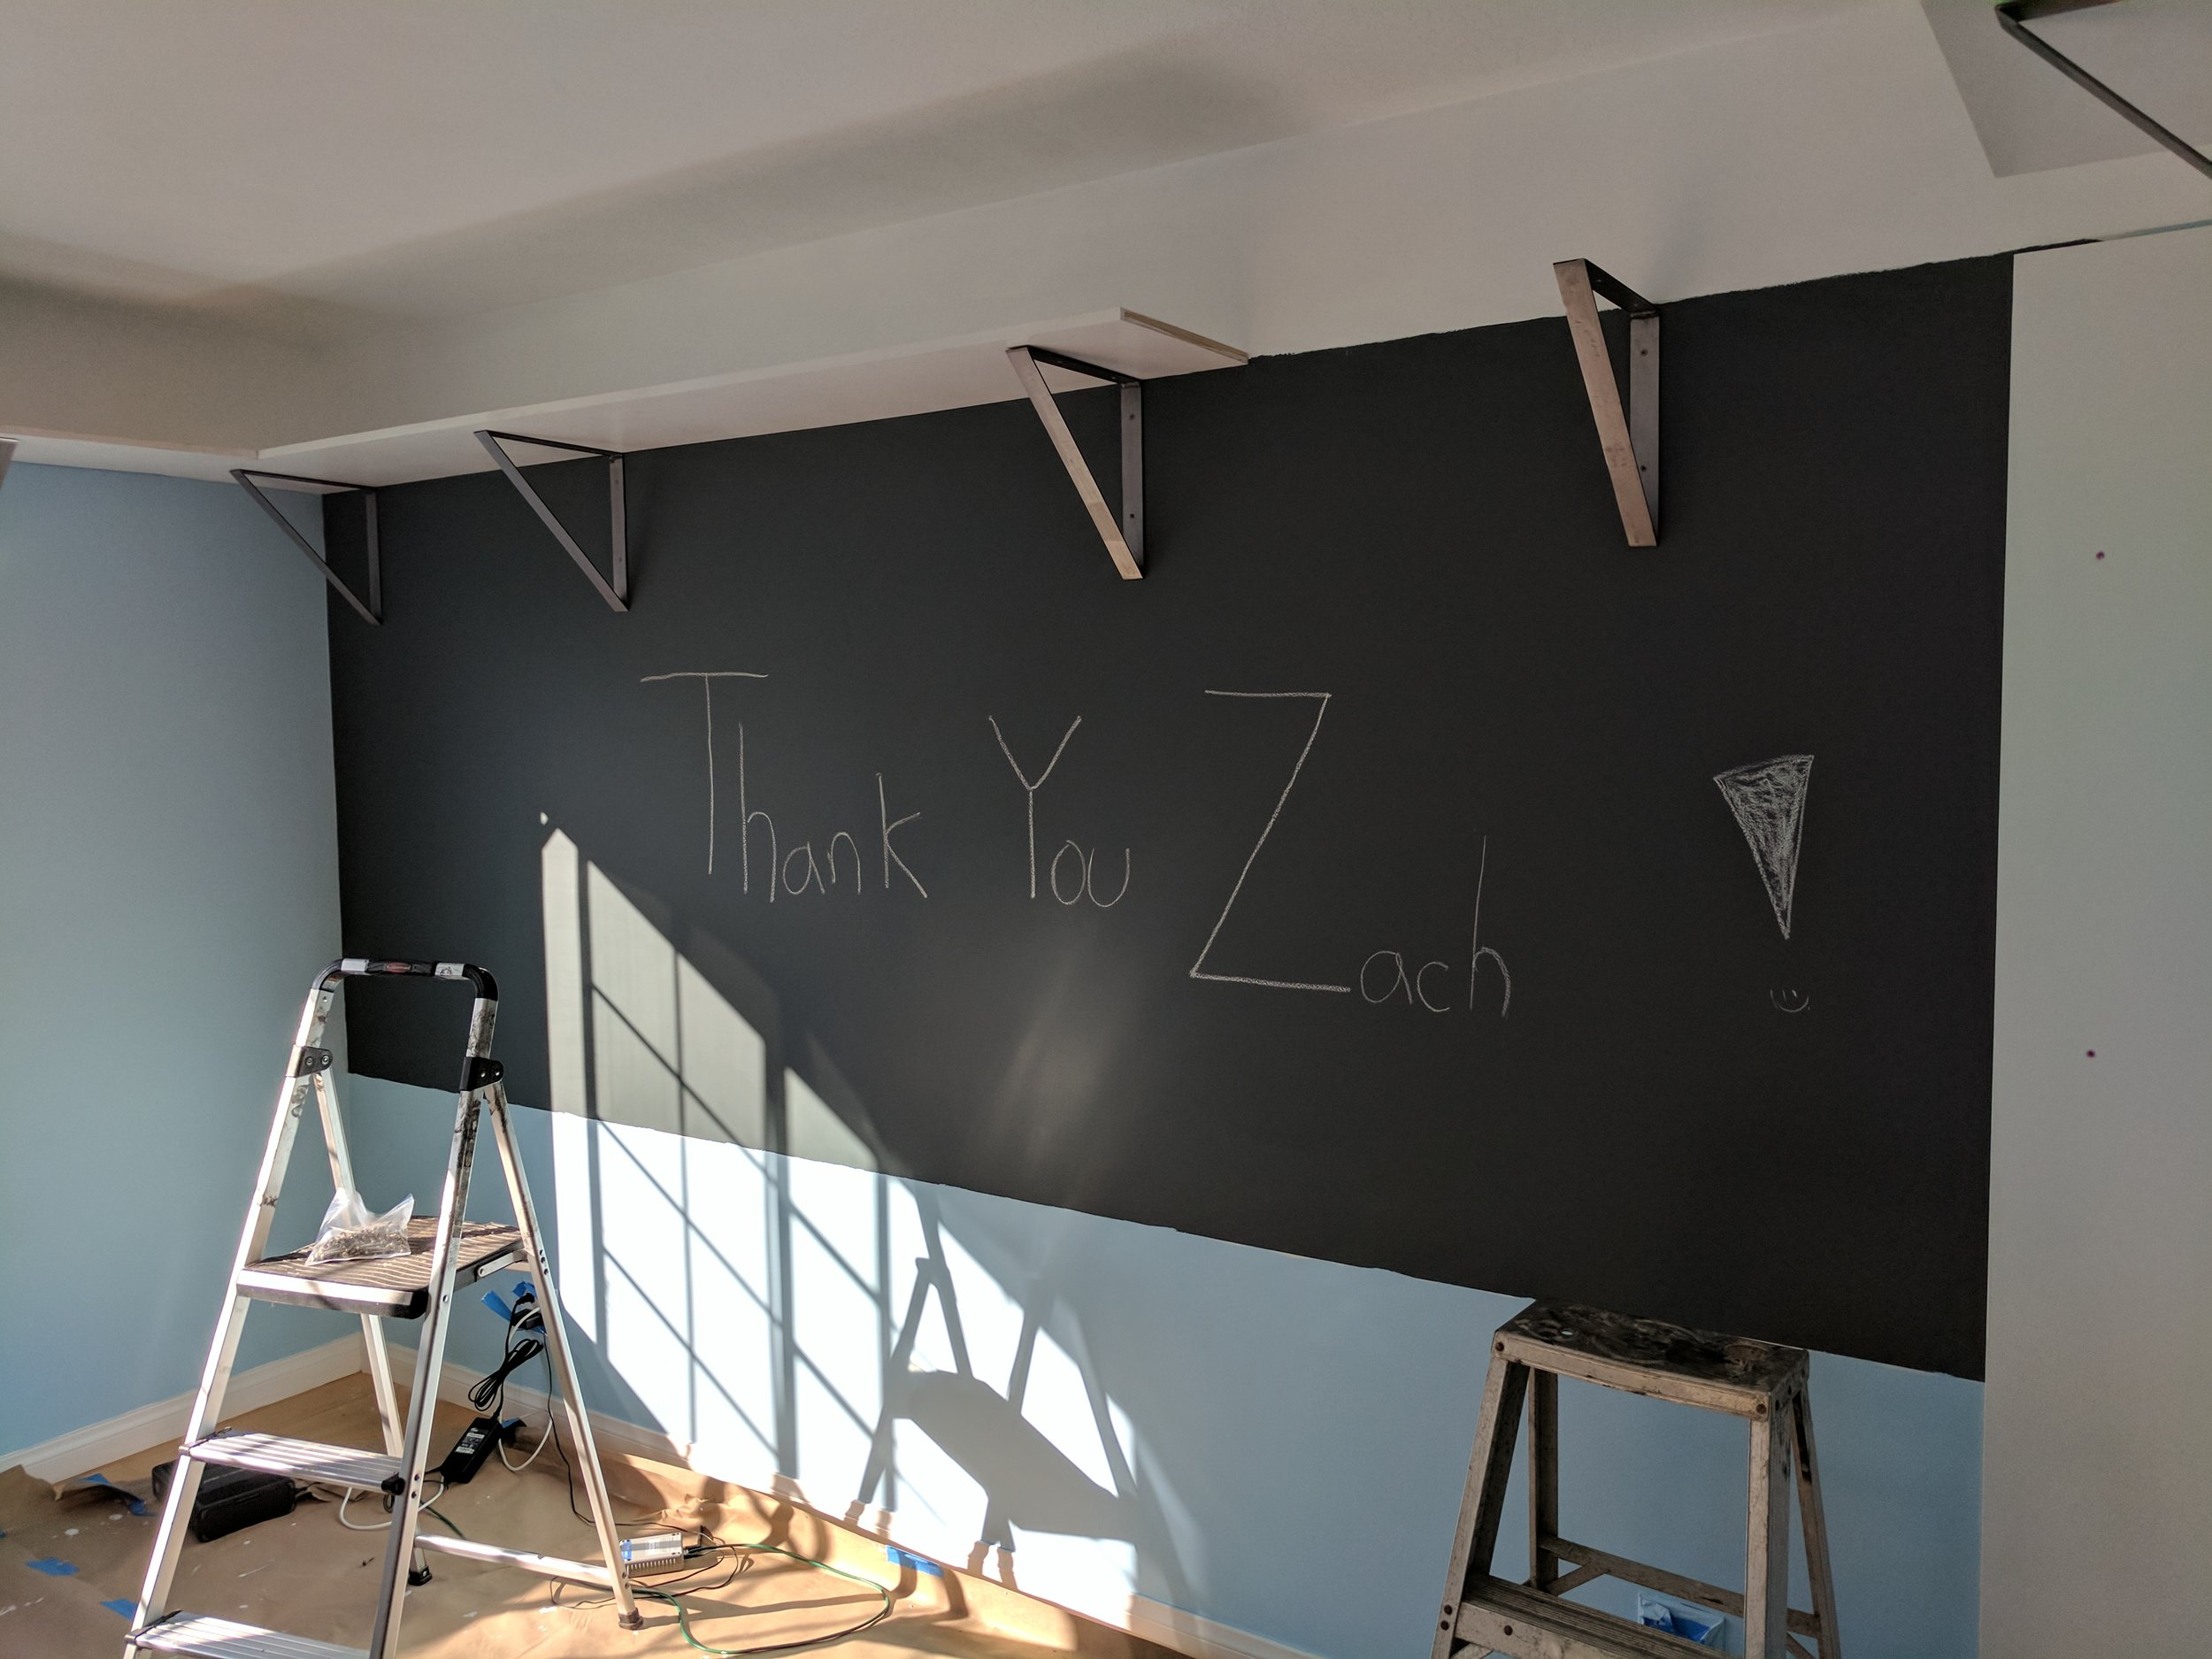 Hopefully the chalkboard paint works! I think they would grow resentful if that never was able to be wiped away.